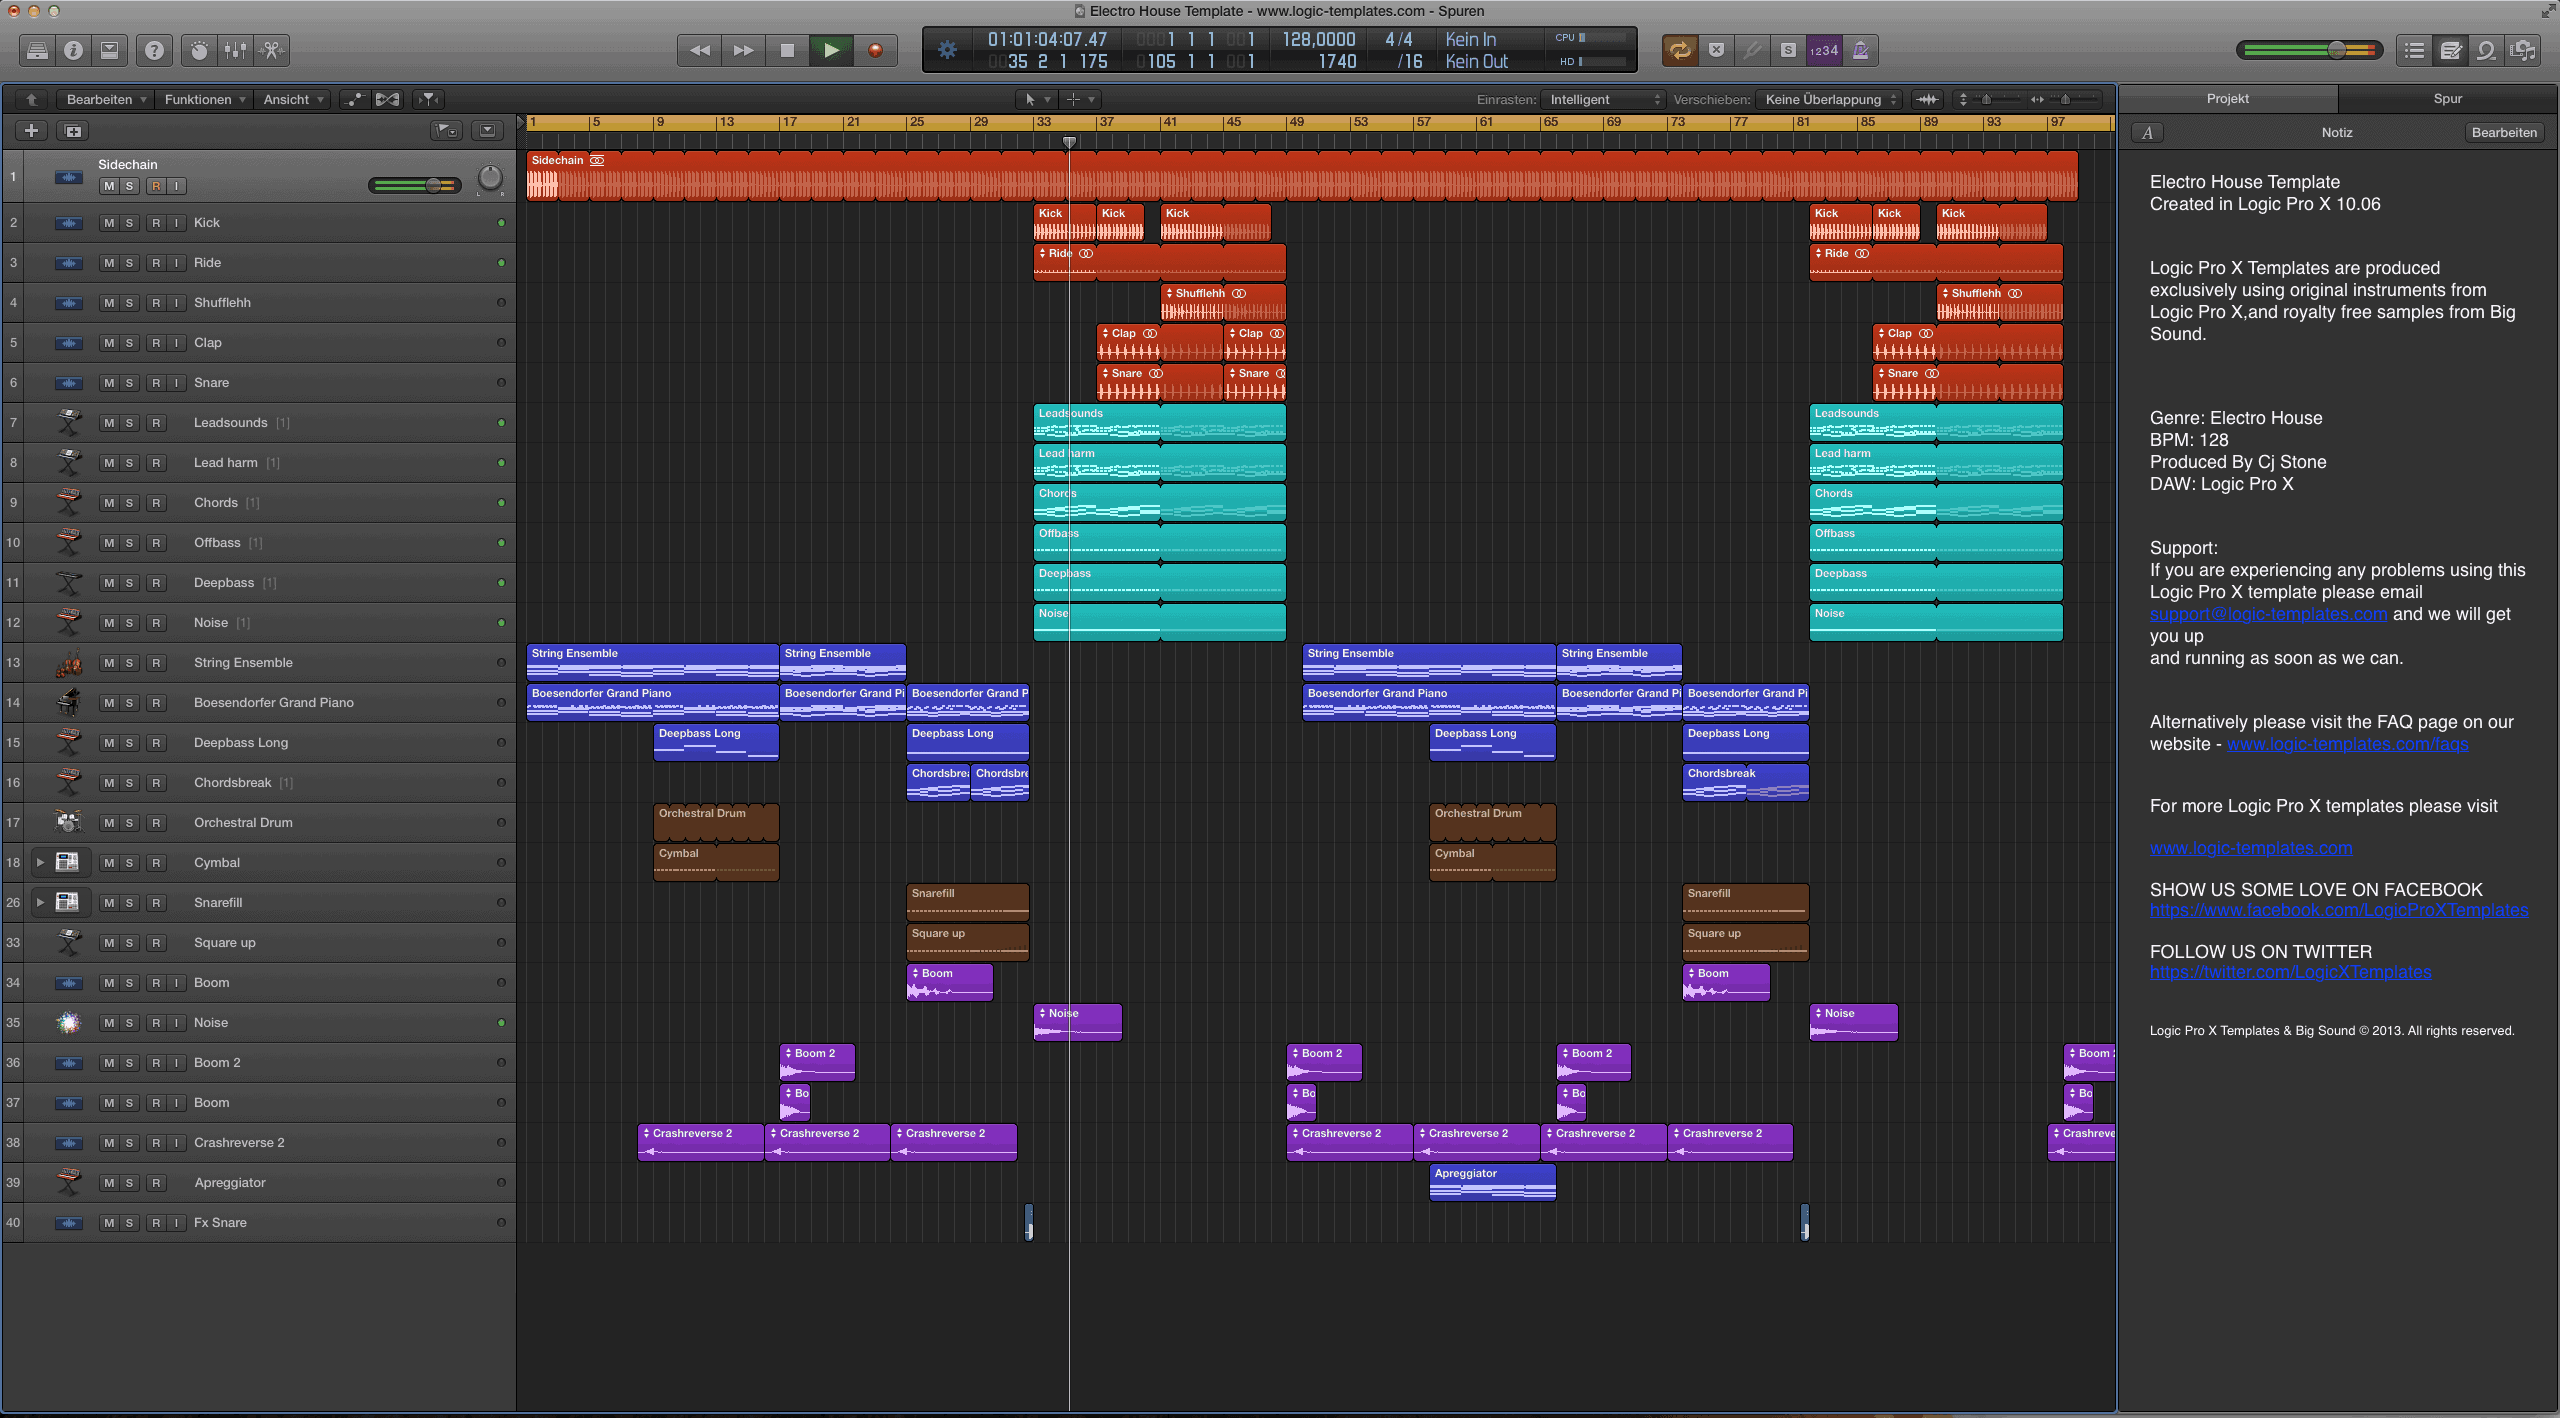 Electro House Template